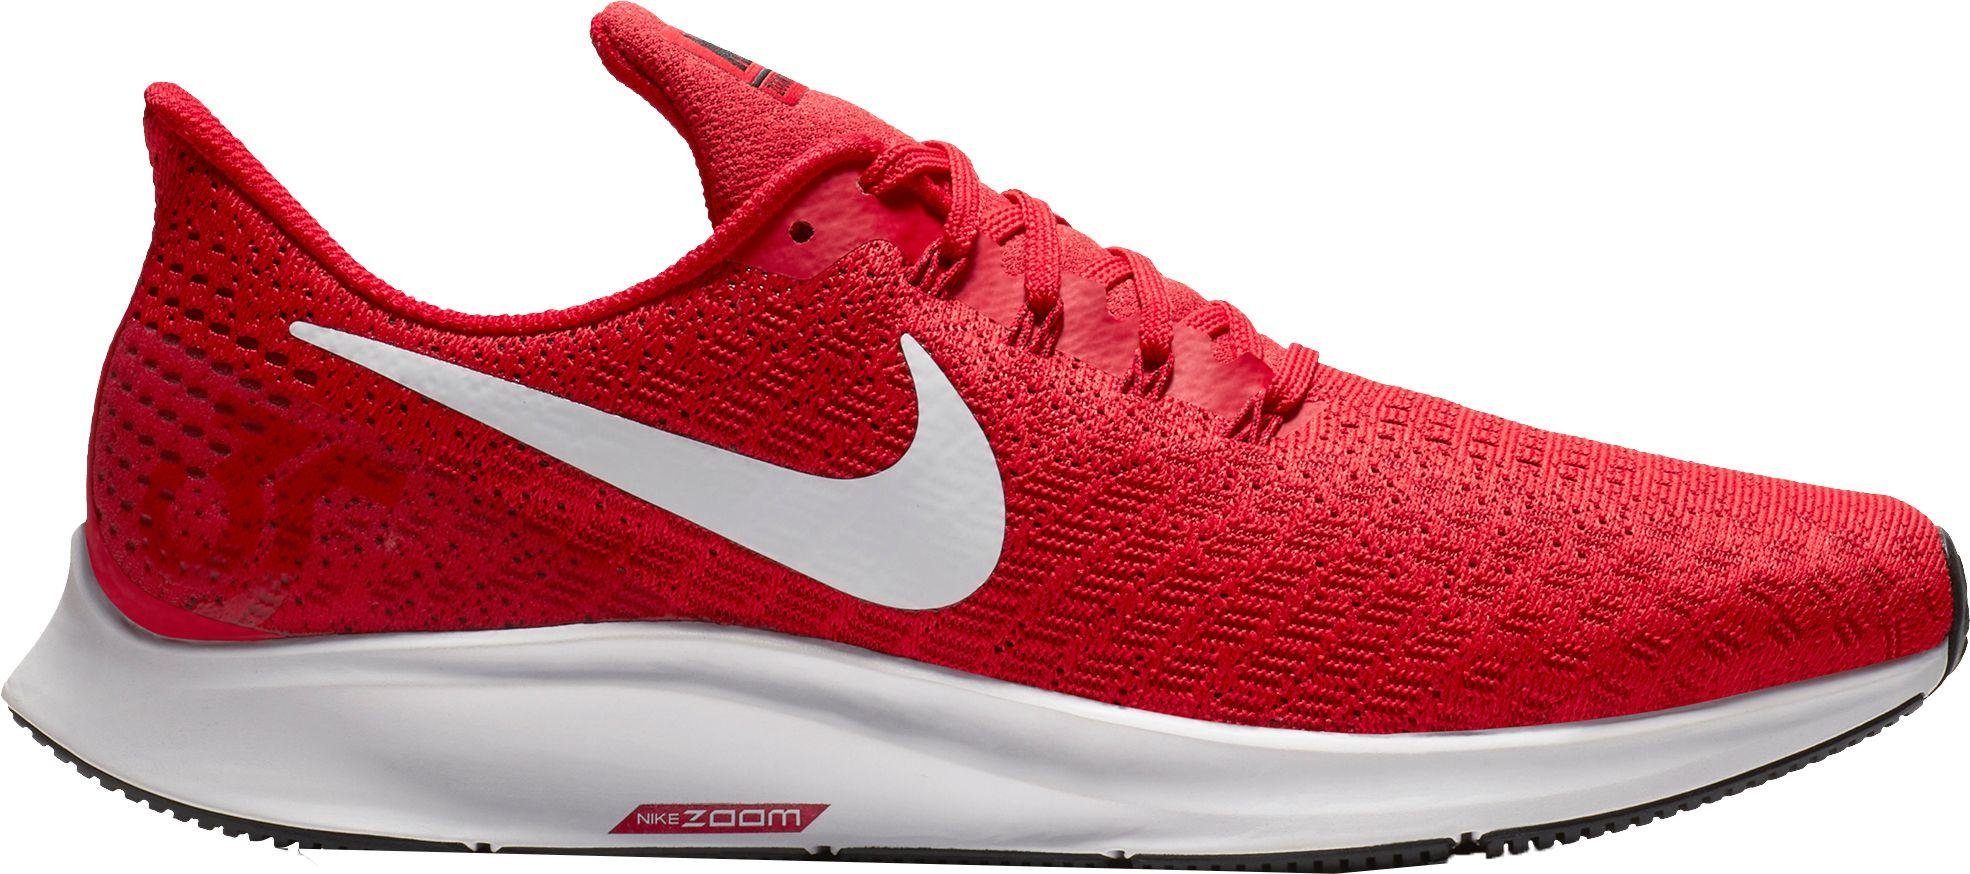 665b03d67 Nike Air Zoom Pegasus 35 Running Shoes in Red for Men - Save 25% - Lyst